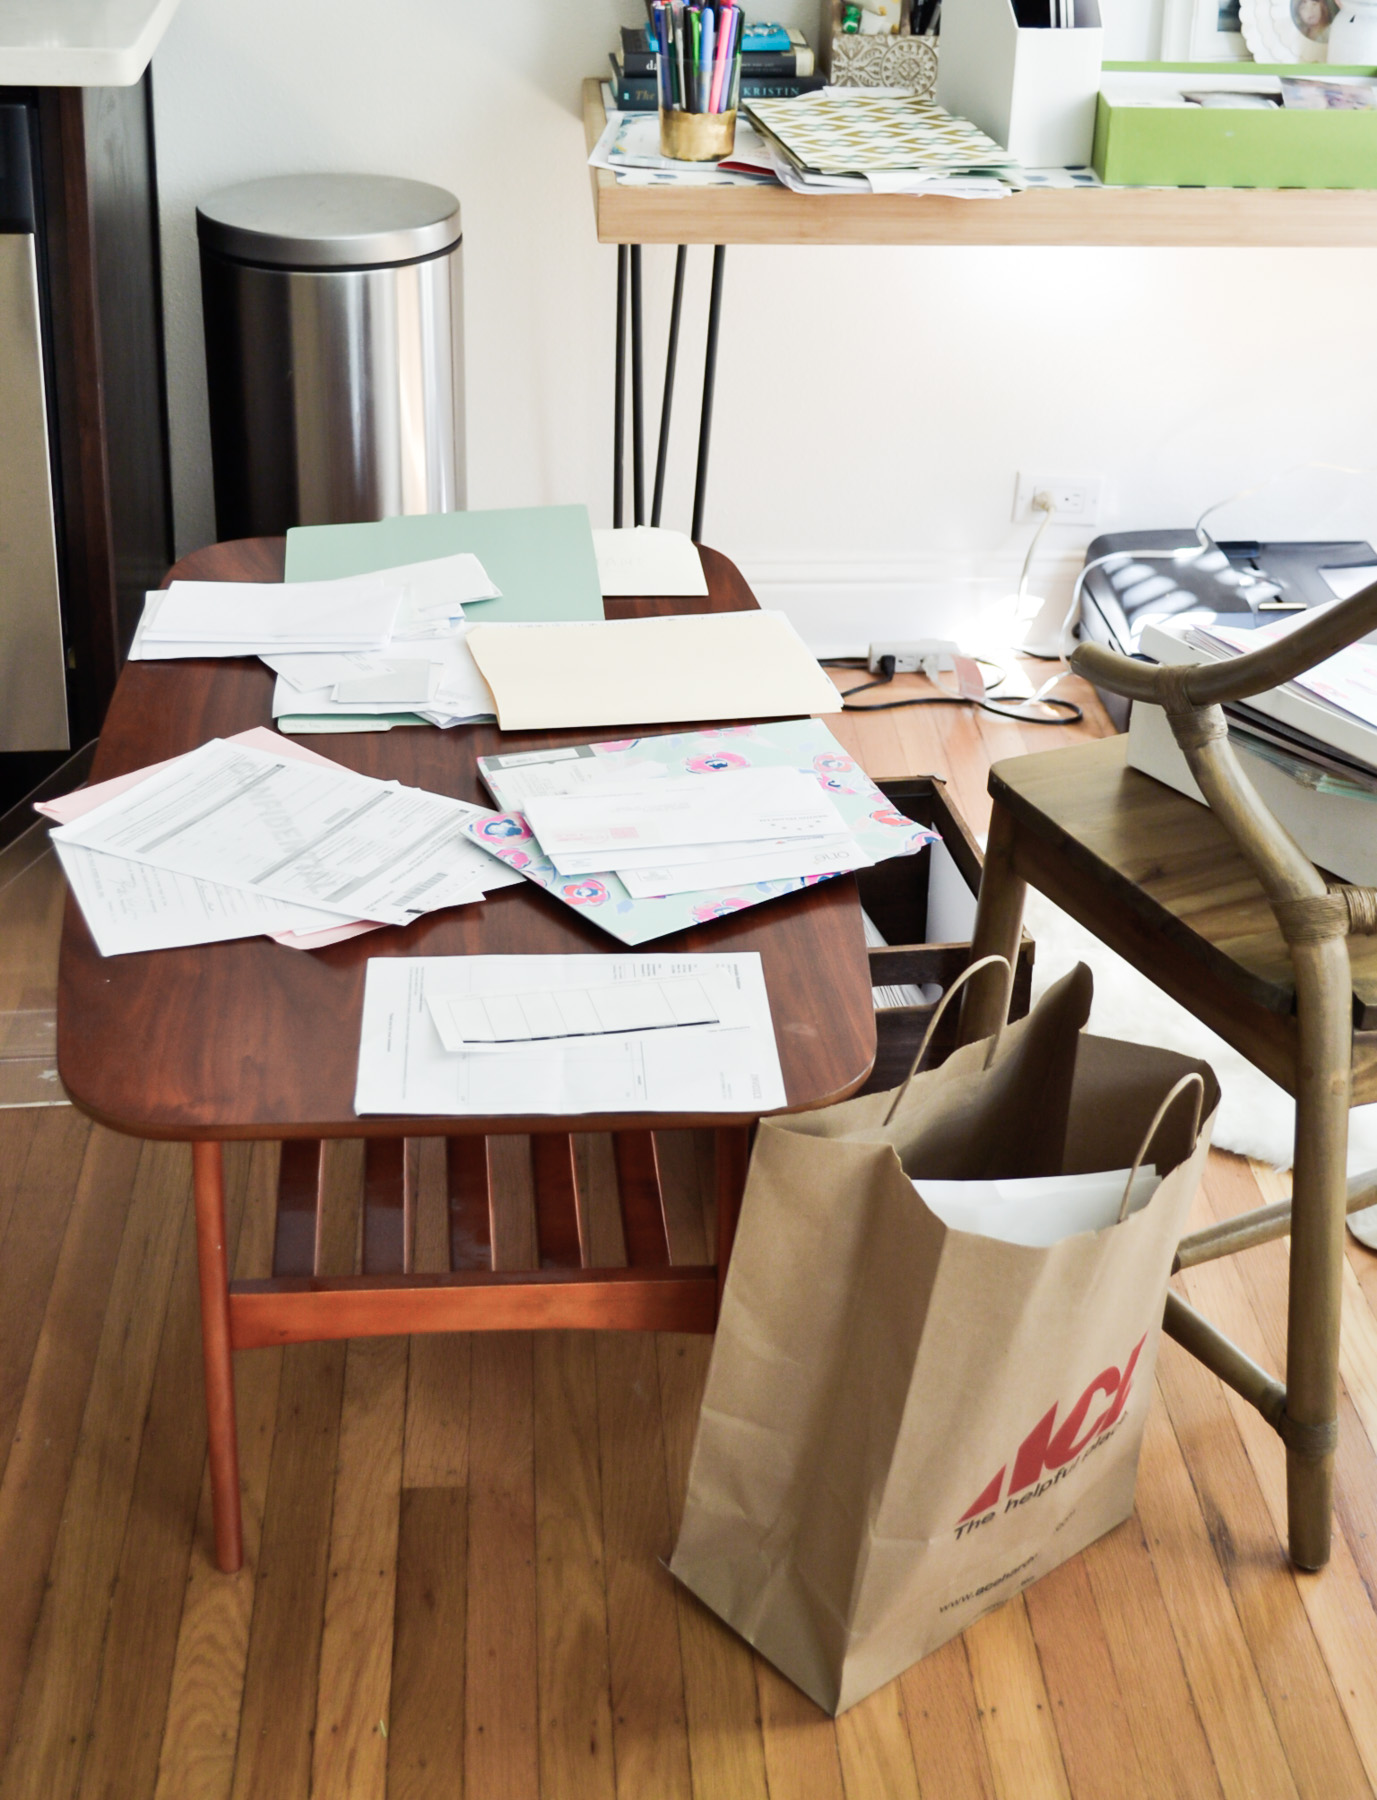 process of organizing paperwork with TaskRabbit